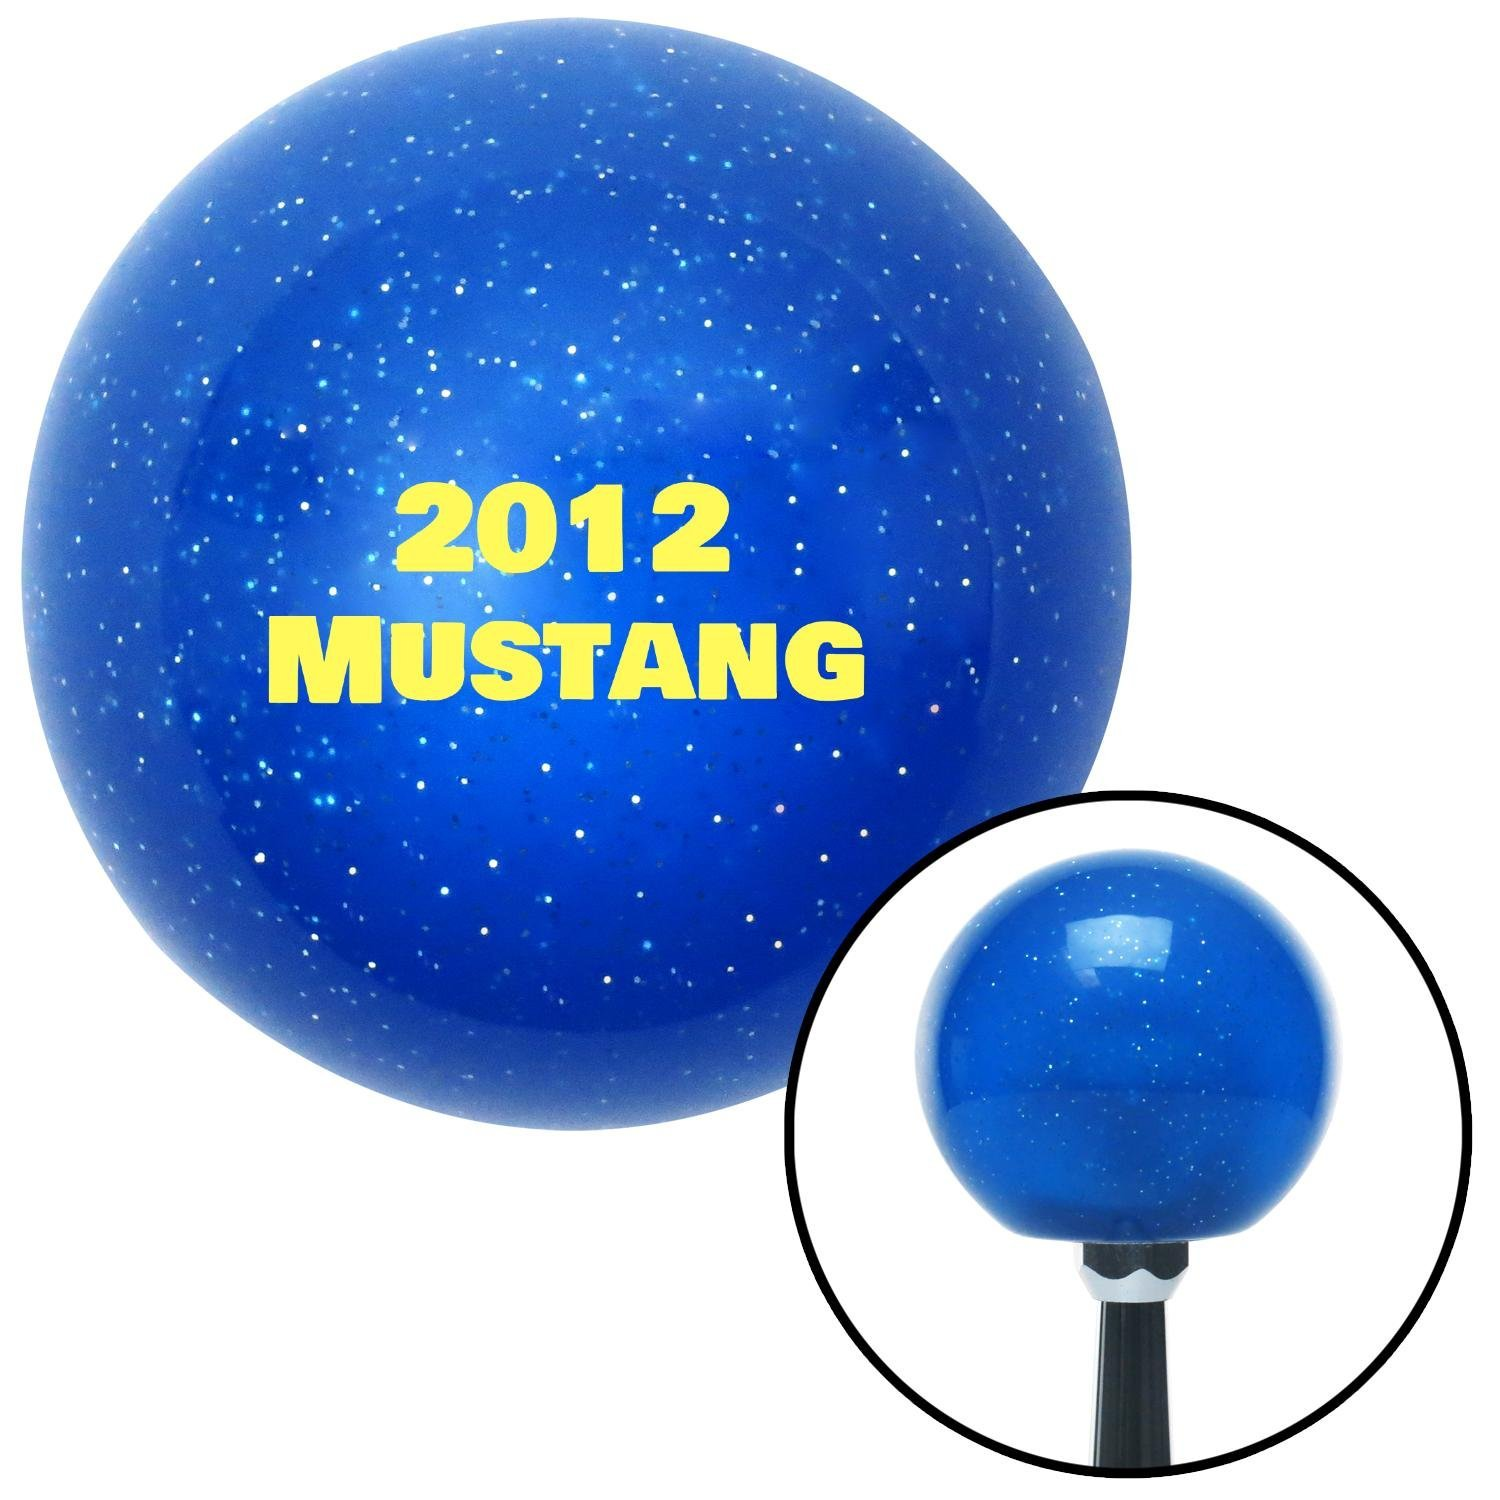 Yellow 2012 Mustang American Shifter 141122 Blue Metal Flake Shift Knob with M16 x 1.5 Insert